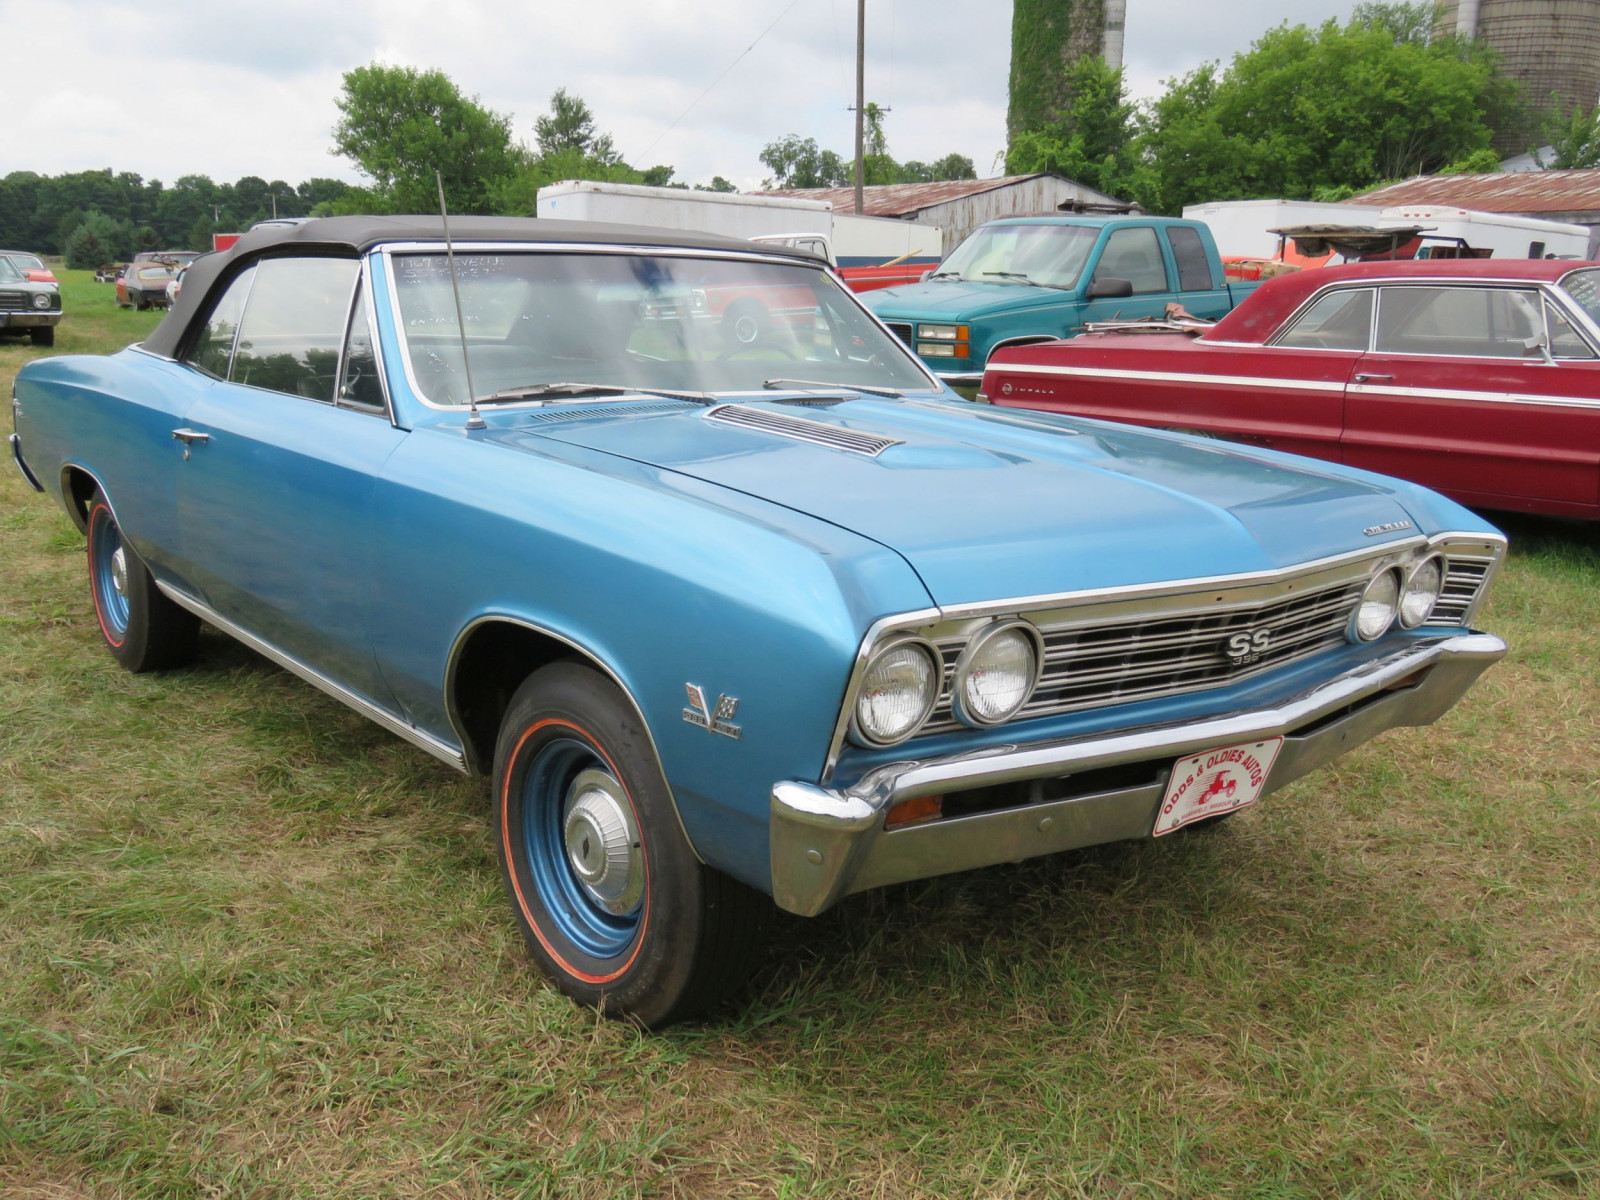 1967 Chevrolet Chevelle SS Convertible - Image 3